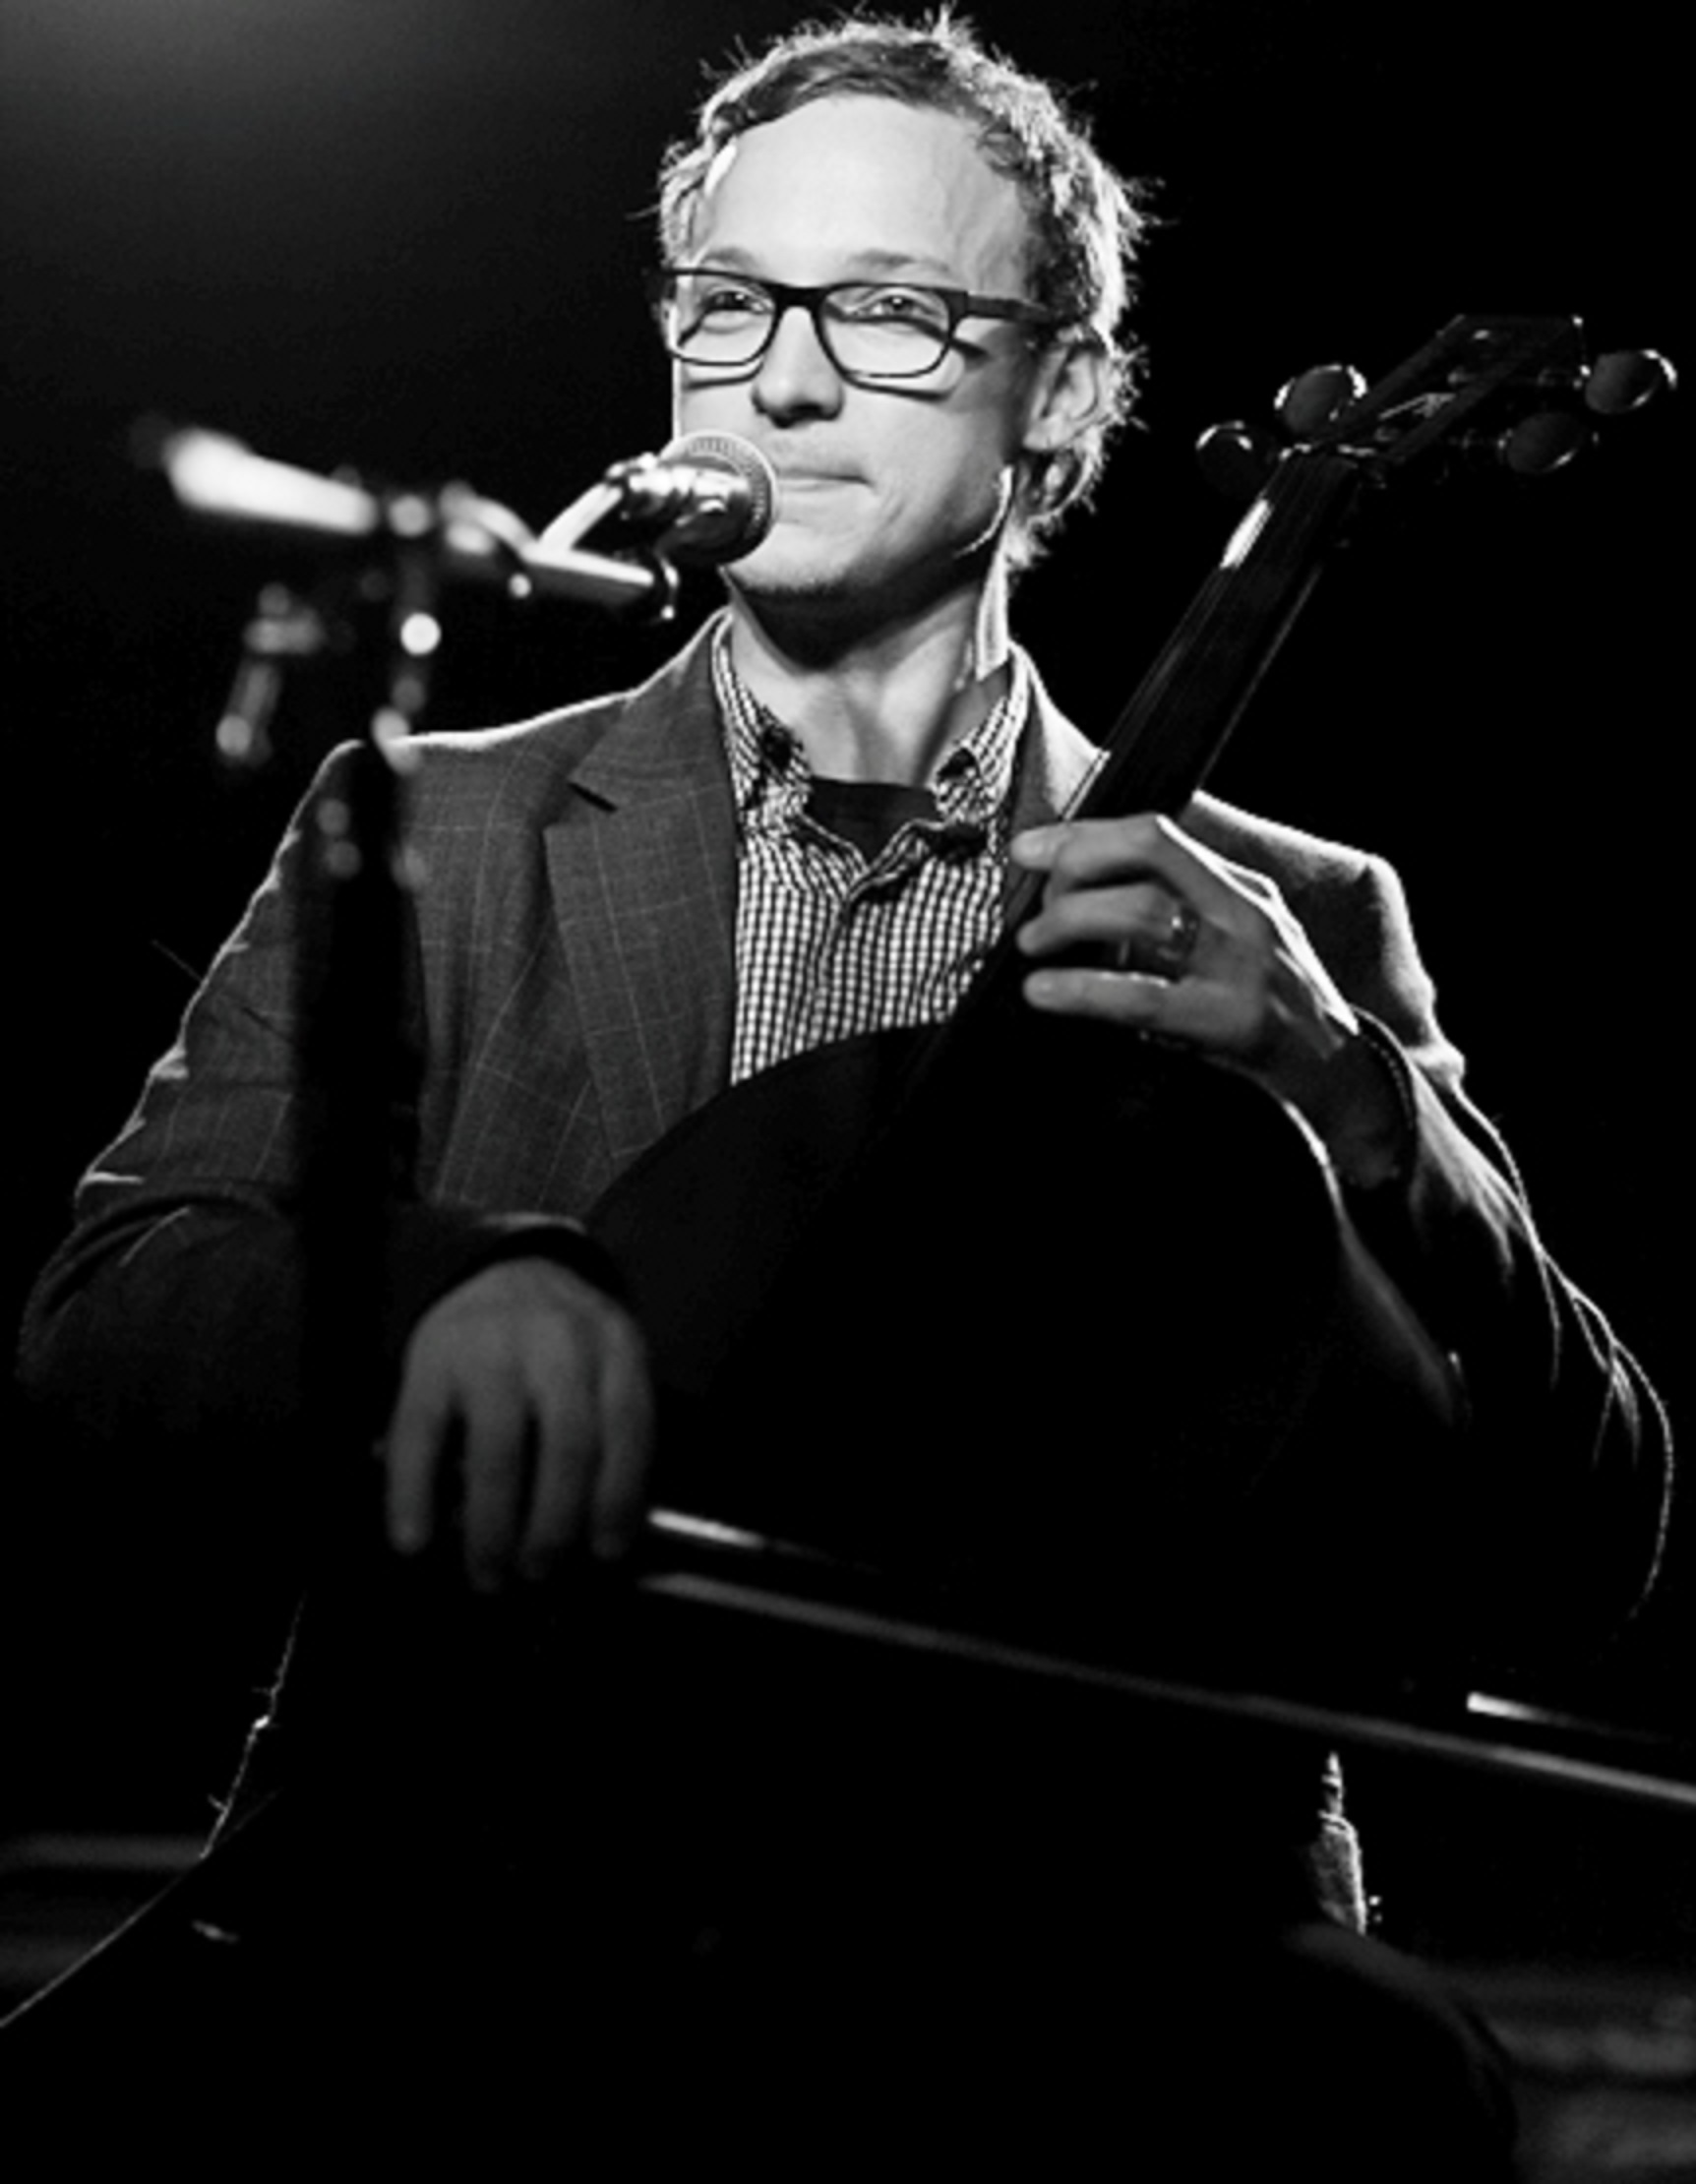 Kentucky Lasagne, Social Awareness, and a Master's Clinic on the Cello: Ben Sollee